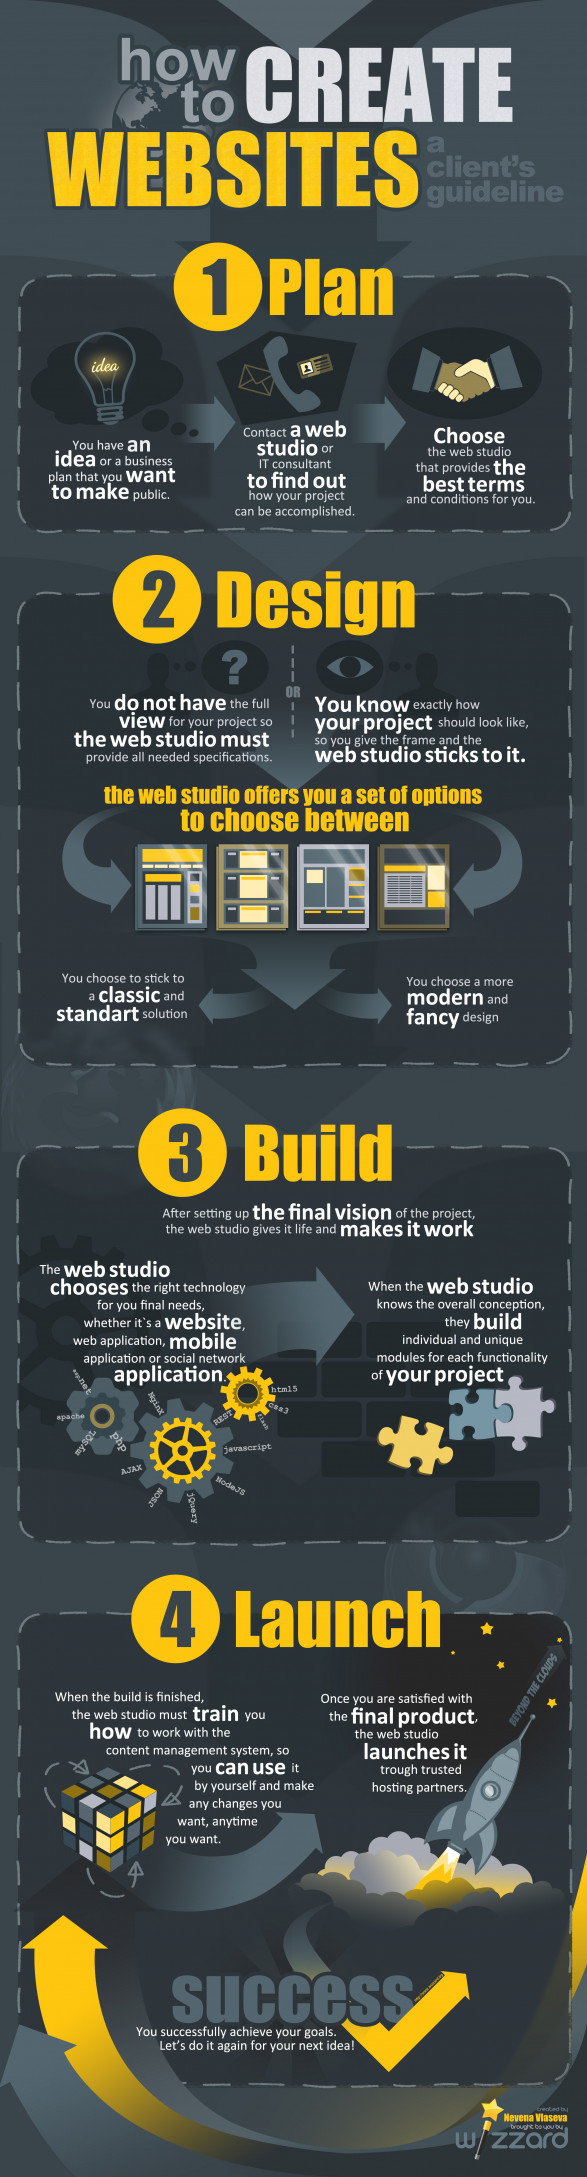 How to create websites